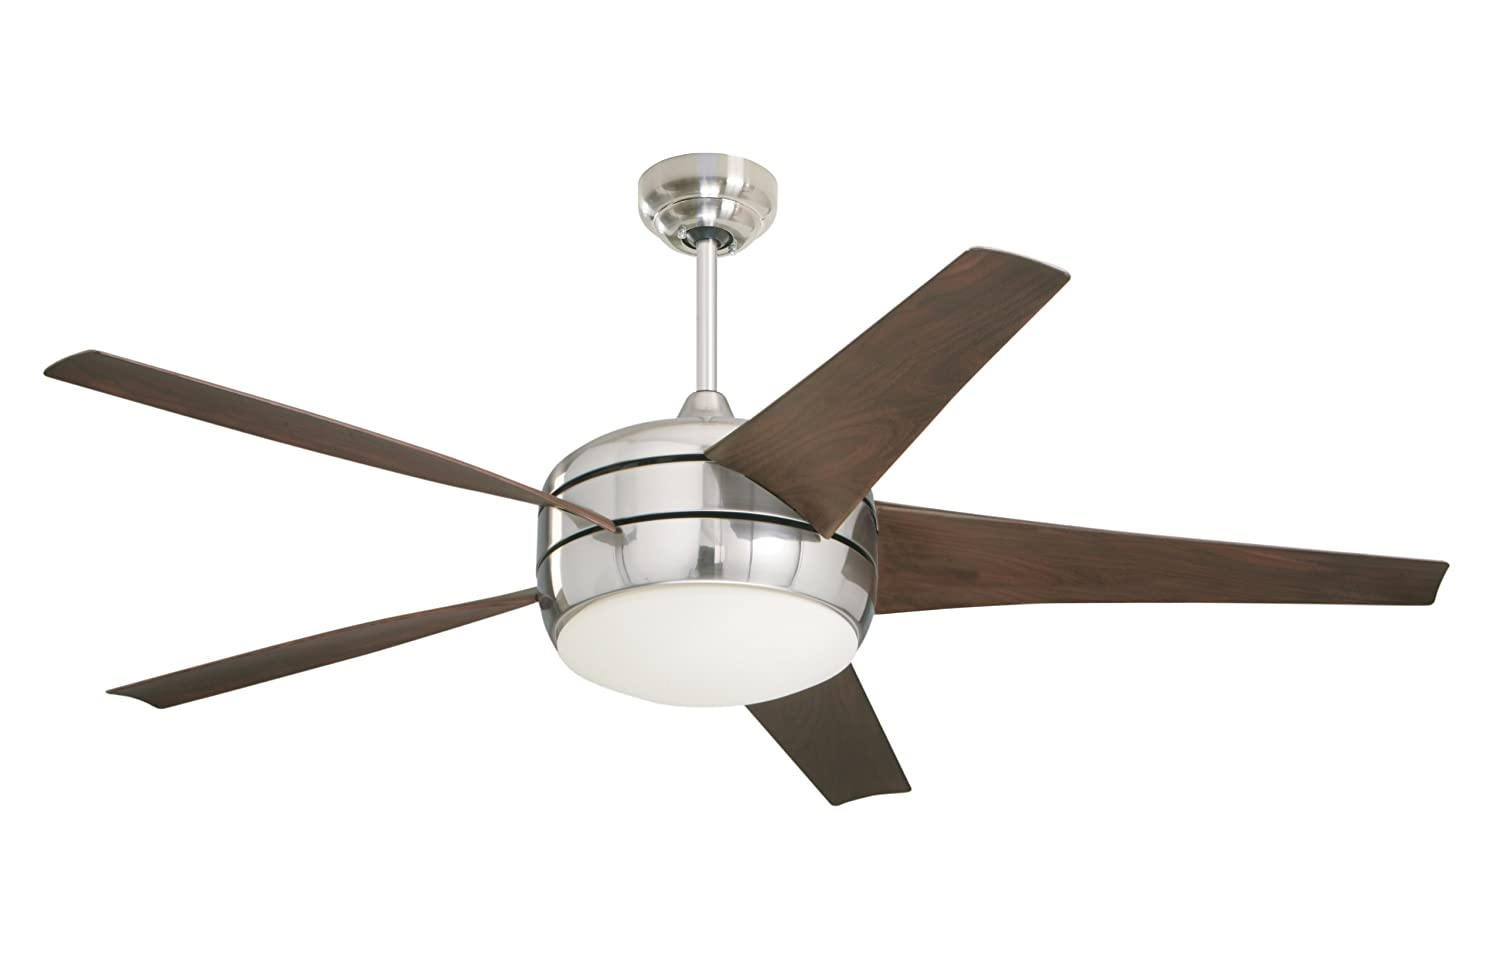 Best ceiling fans reviews buying guide and comparison 2018 highly efficient ceiling fan aloadofball Images